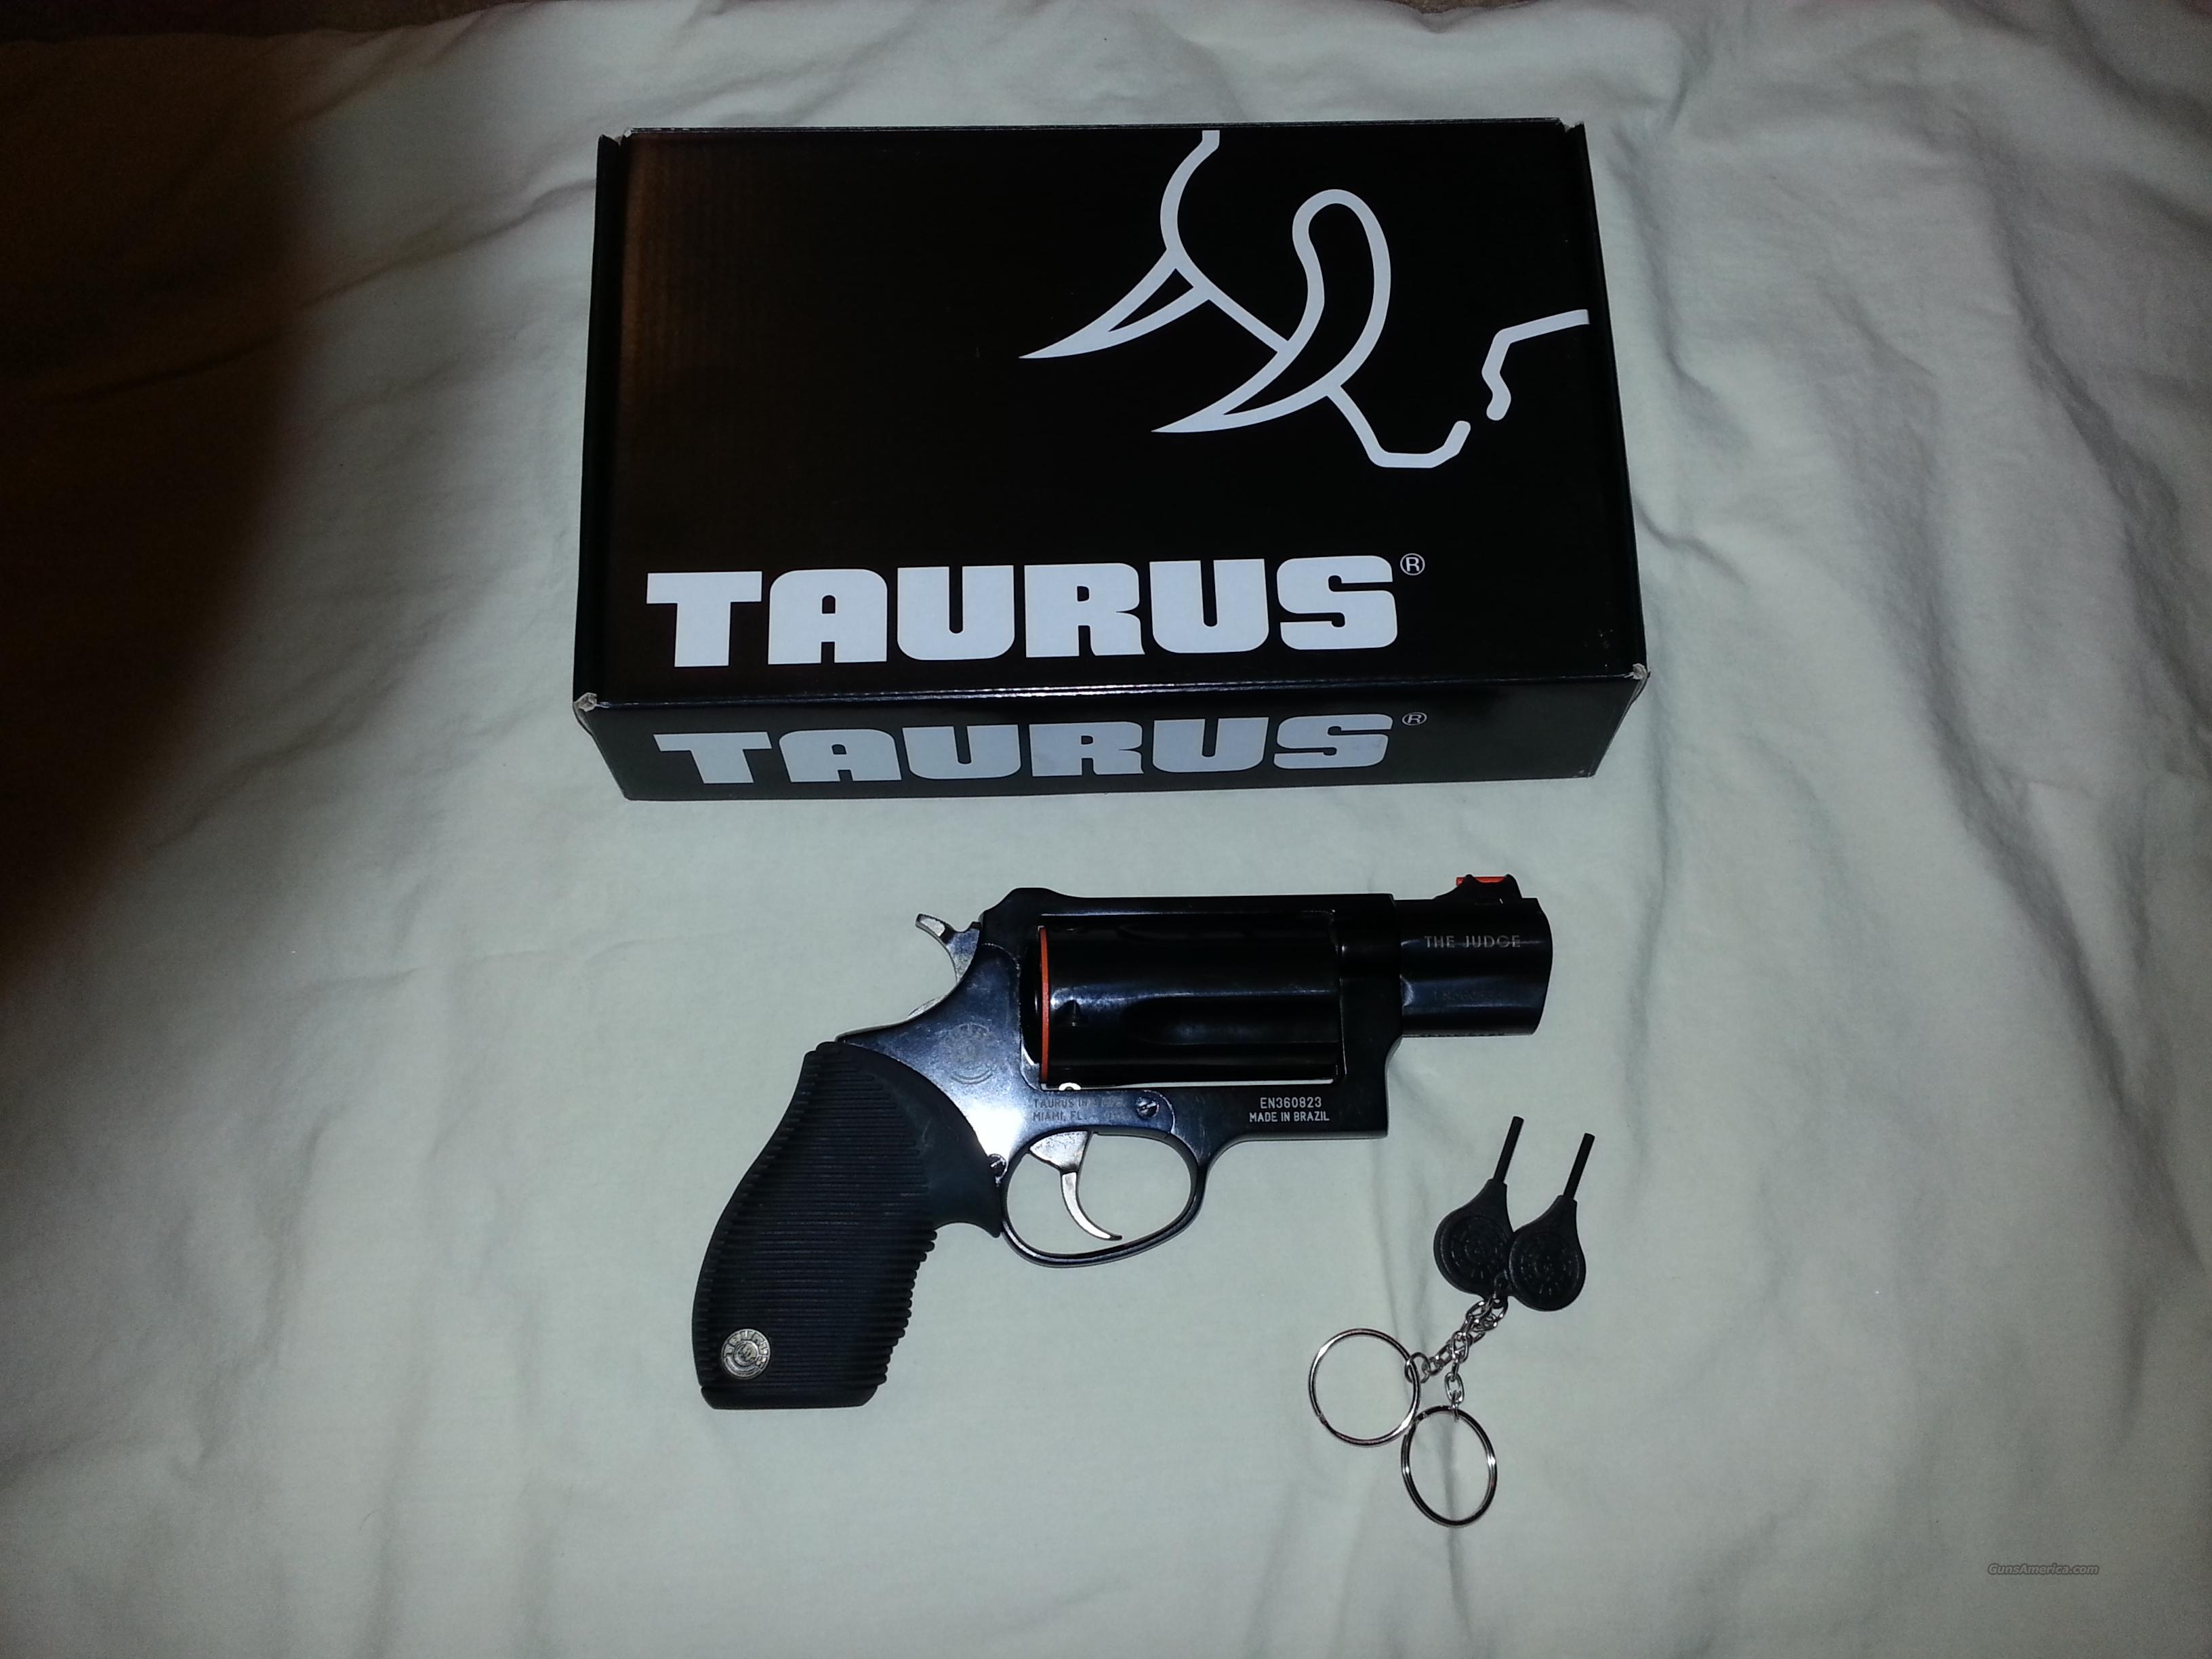 TAURUS/ THE JUDGE 45/410  Guns > Pistols > Taurus Pistols/Revolvers > Revolvers